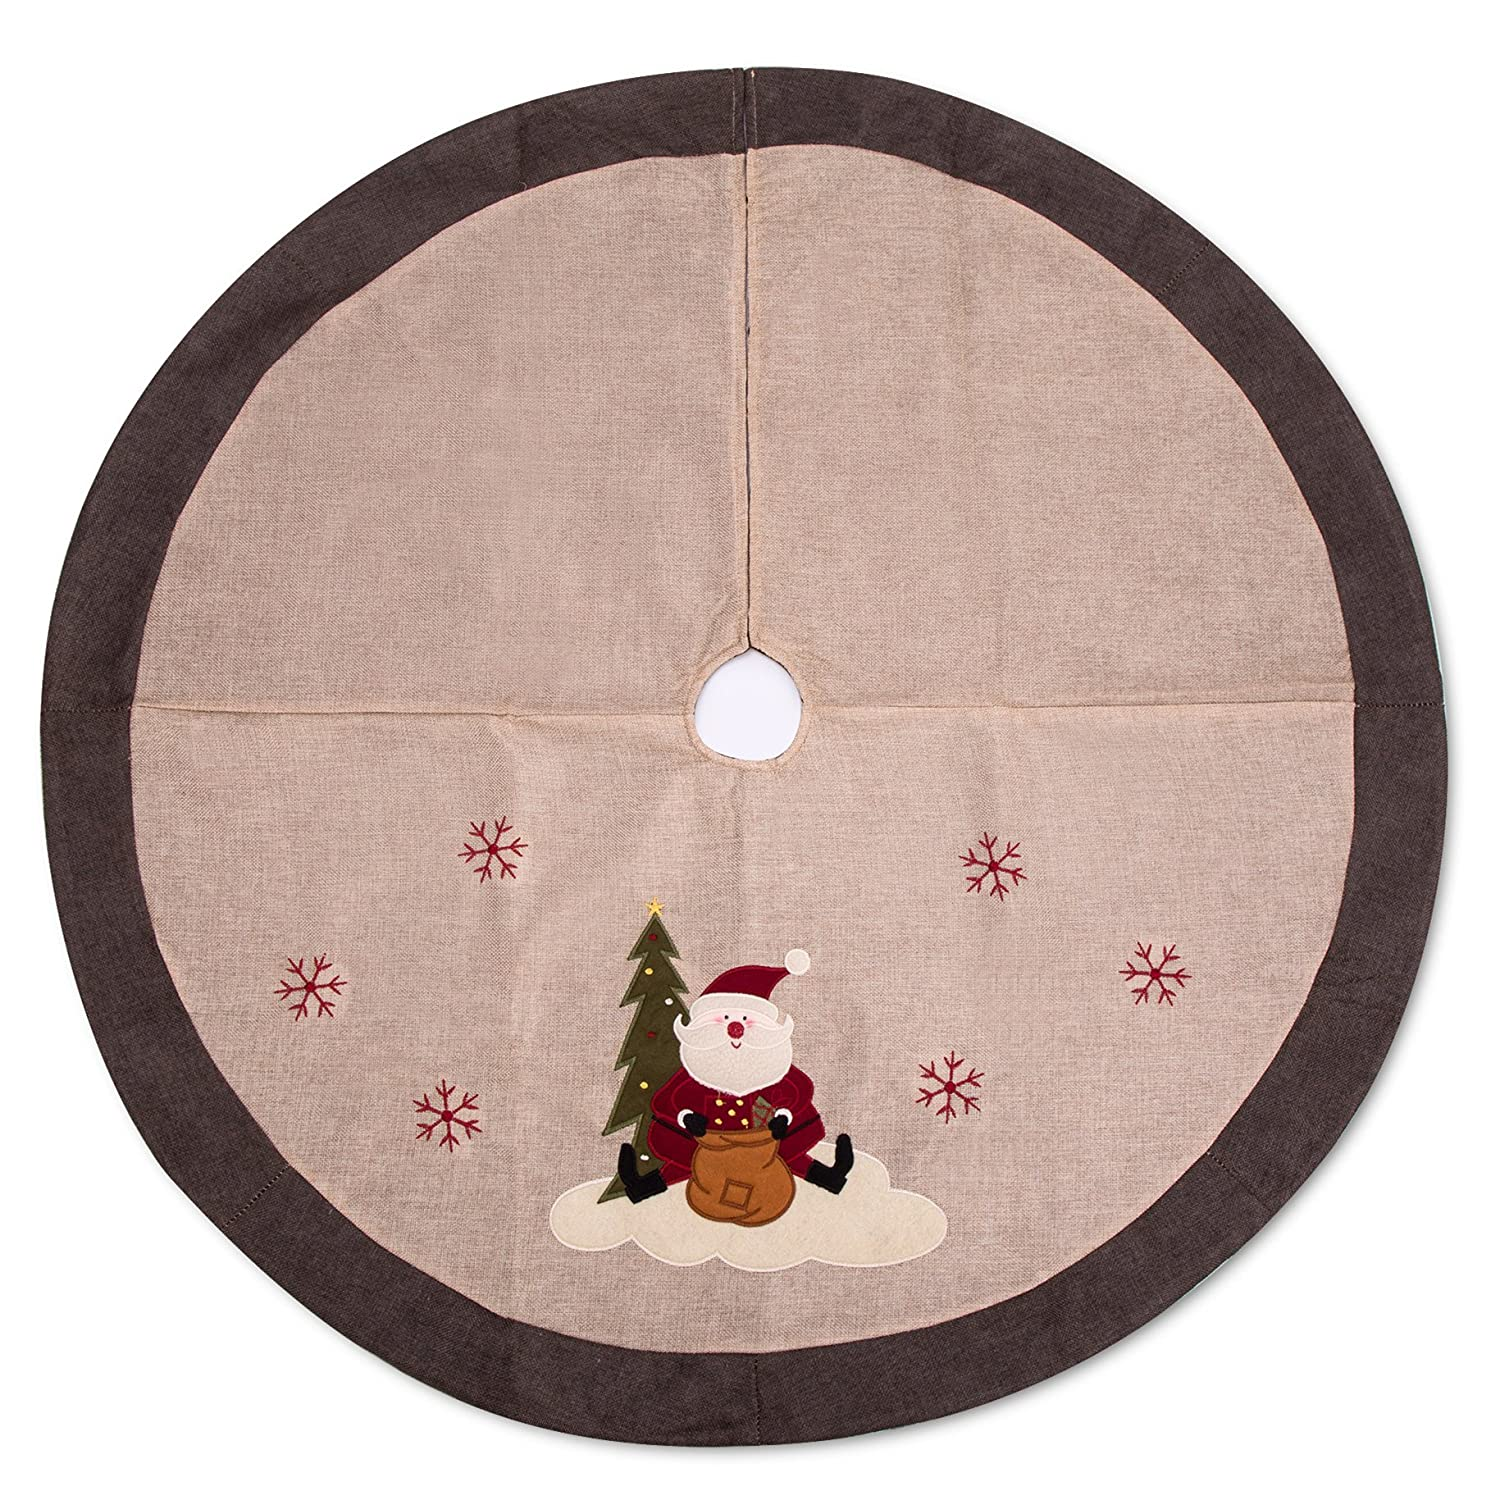 Begie Brown Rim M026 iPEGTOP 42 Burlap Rustic Christmas Tree Skirt Classic Holiday Decorations Woodland Santa Snawflake Embroidery